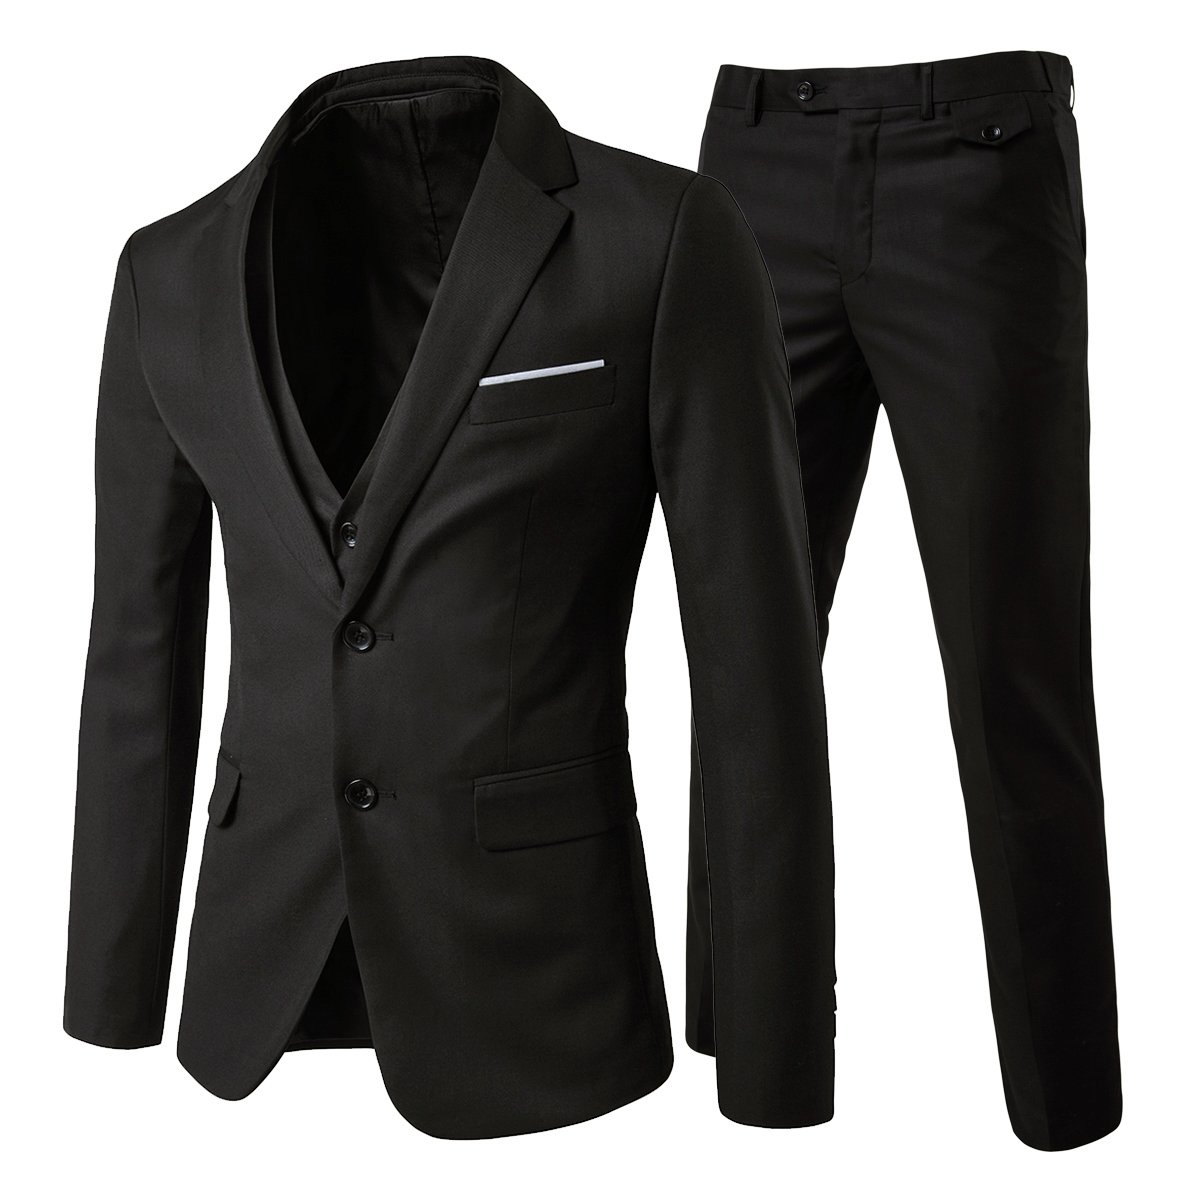 Mens Modern Fit 3-Piece Suit Blazer Jacket Tux Vest and Trousers,Black,Medium